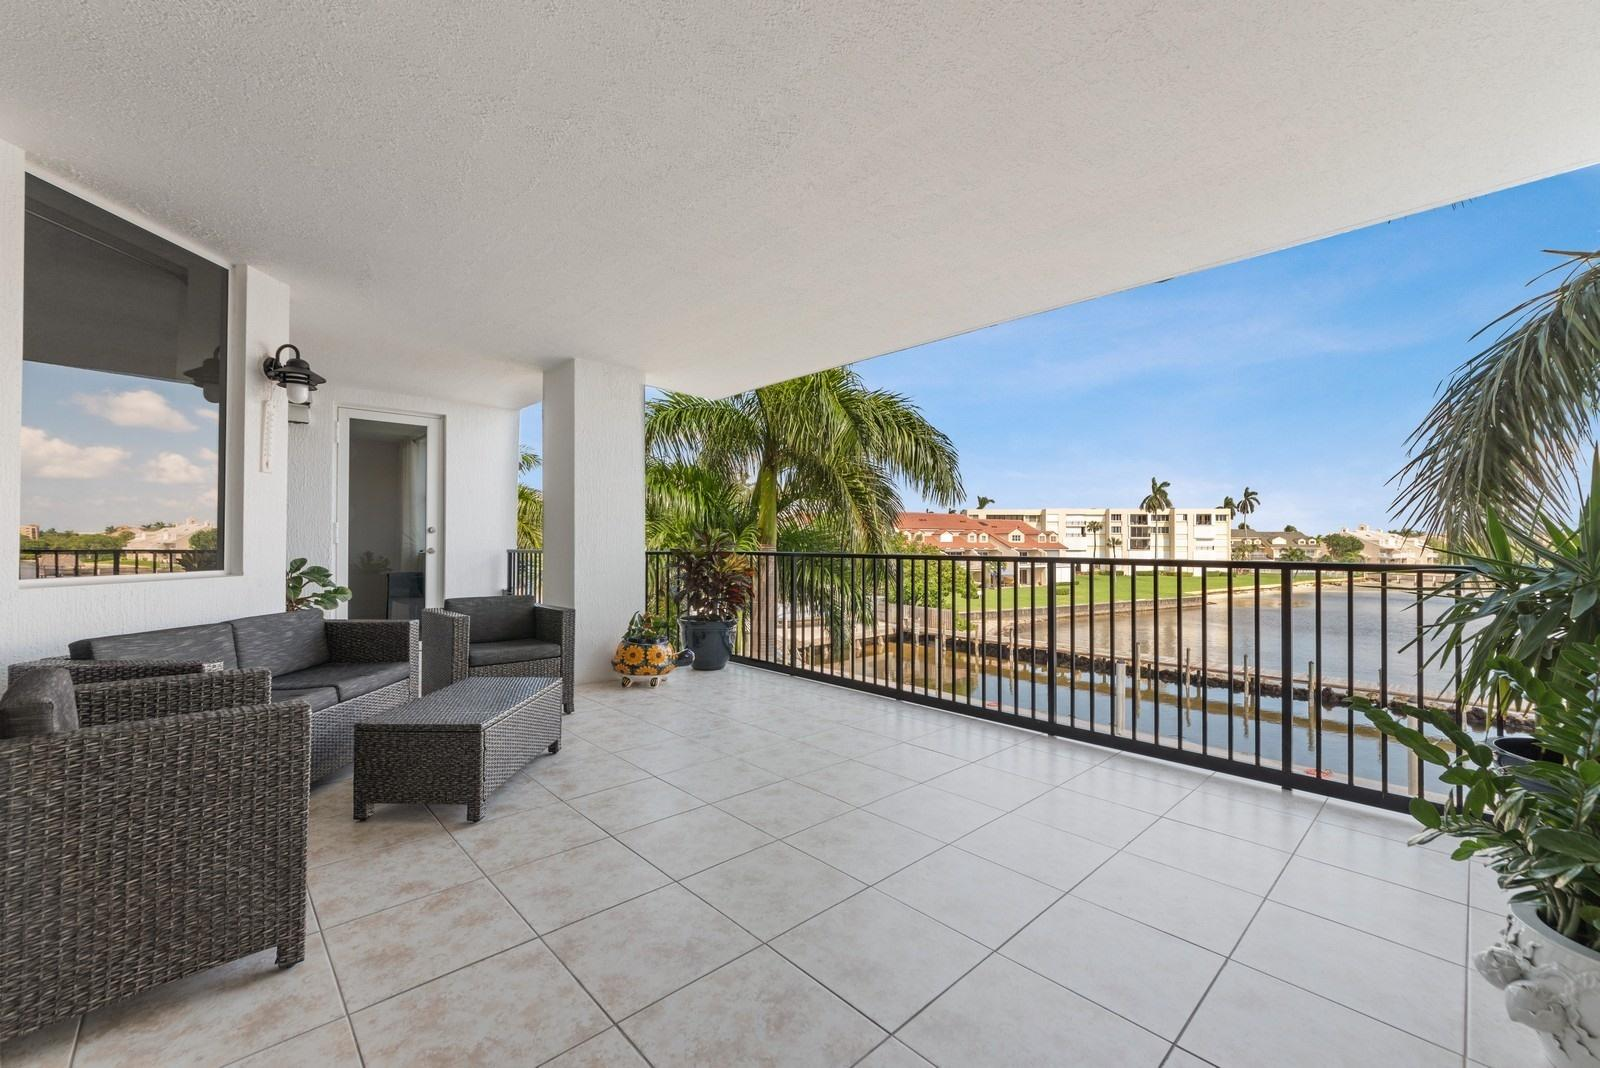 PENINSULA ON THE INTRACOASTAL HOMES FOR SALE